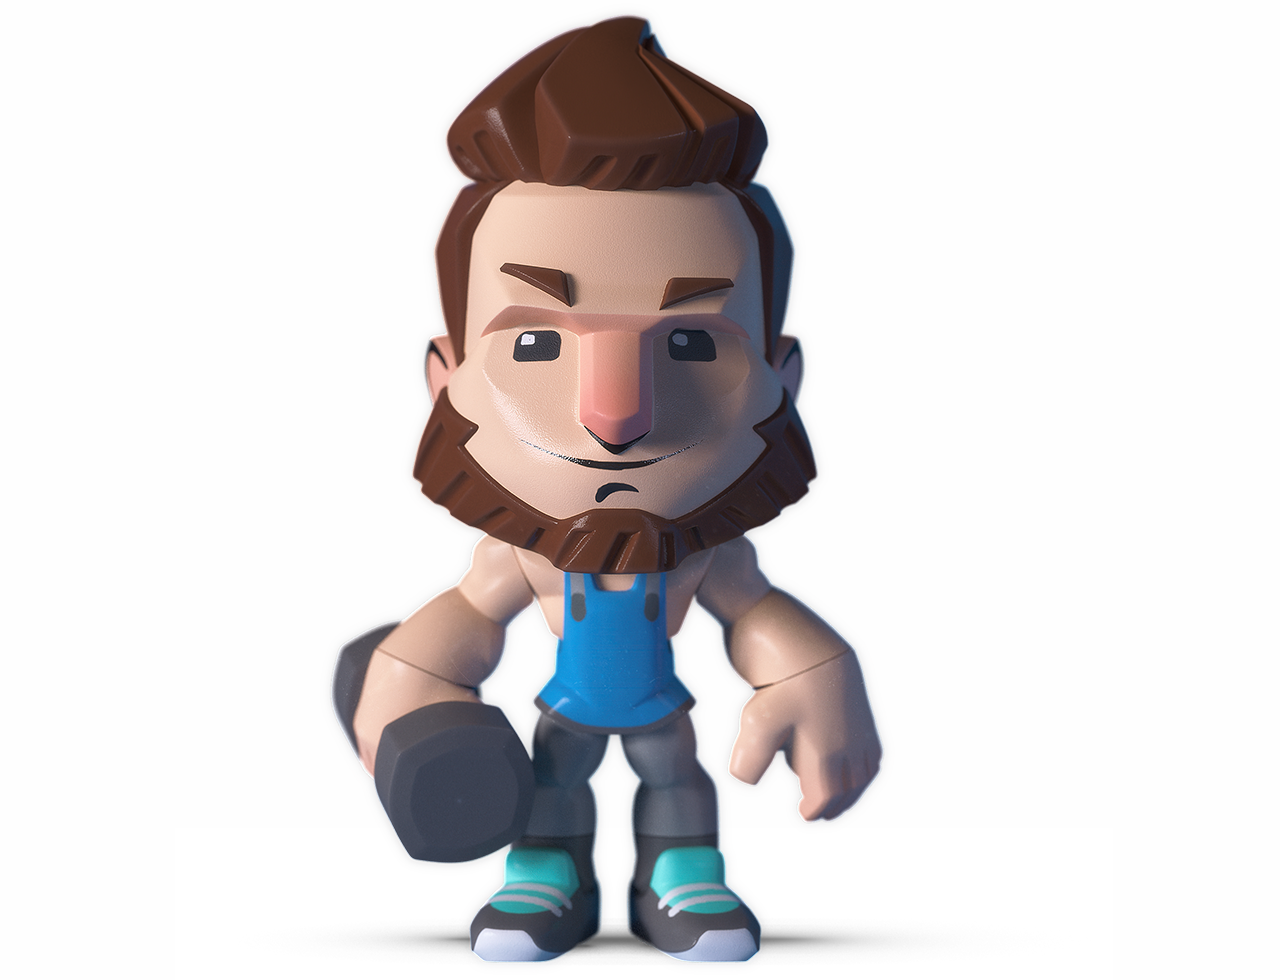 fitness-toy-03-render-vertexbee